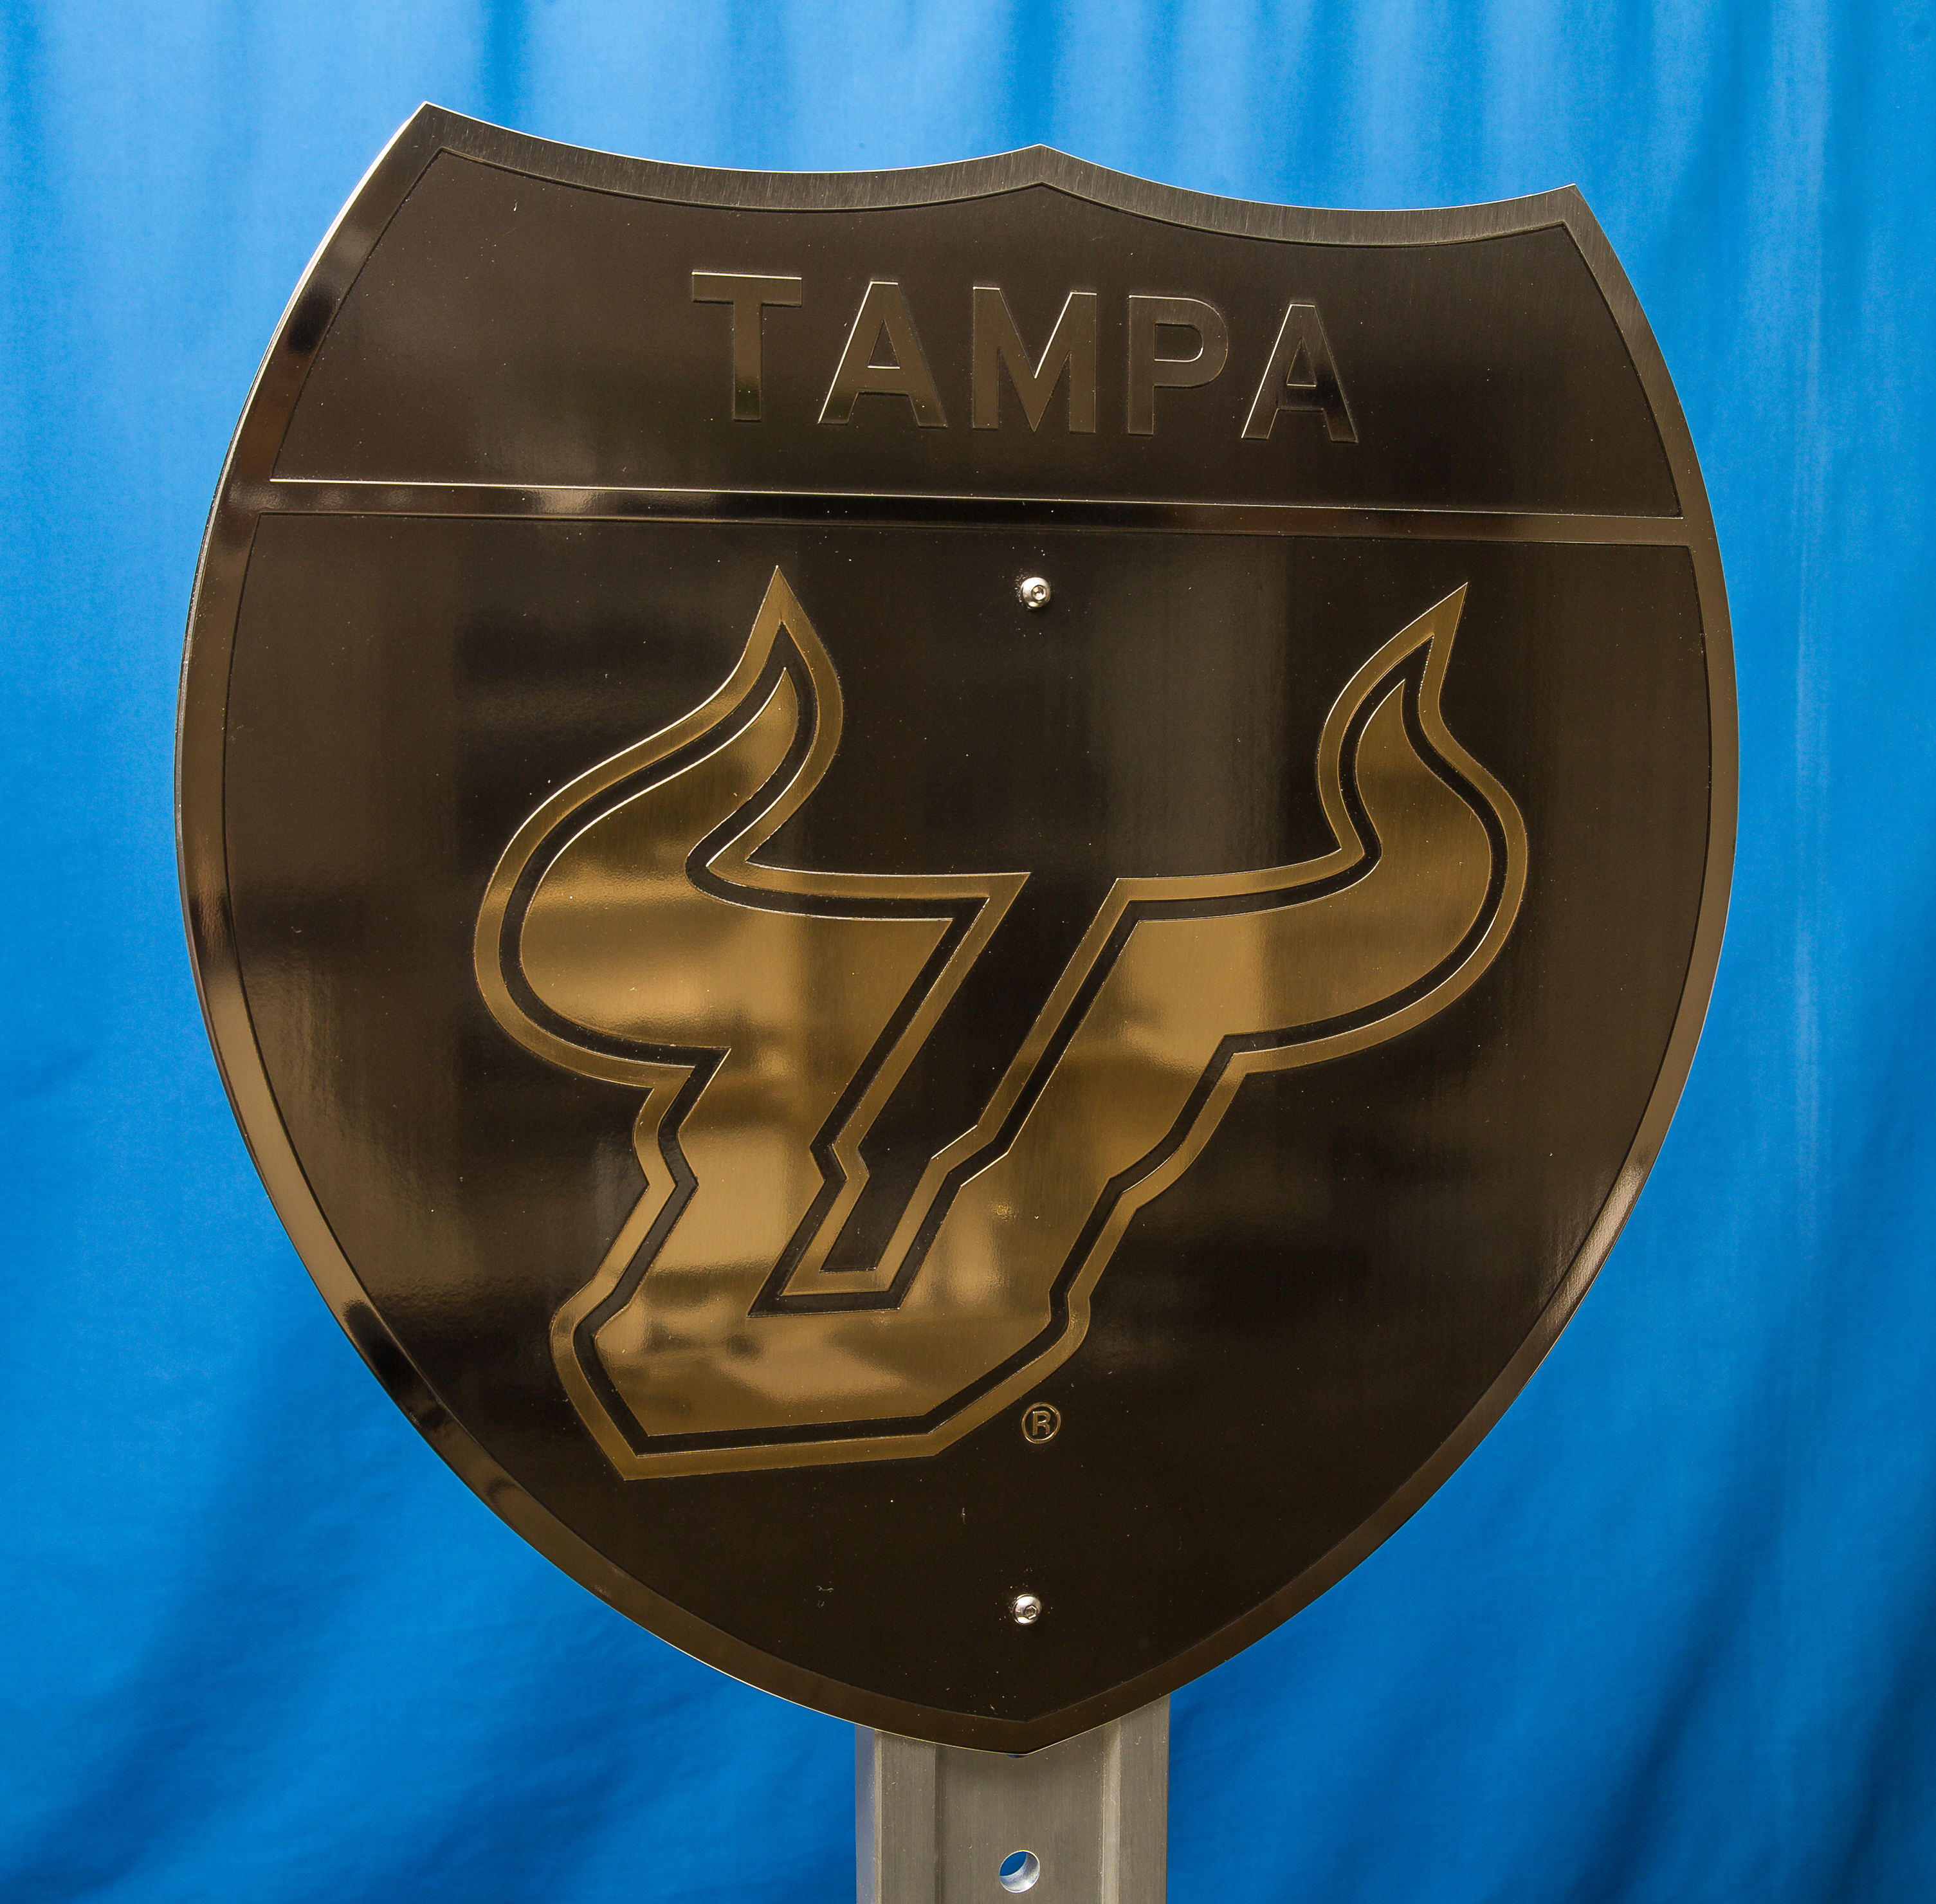 USF and UCF War on I-4 trophy shoot Friday November 18, 2016 in Tampa, Fl.